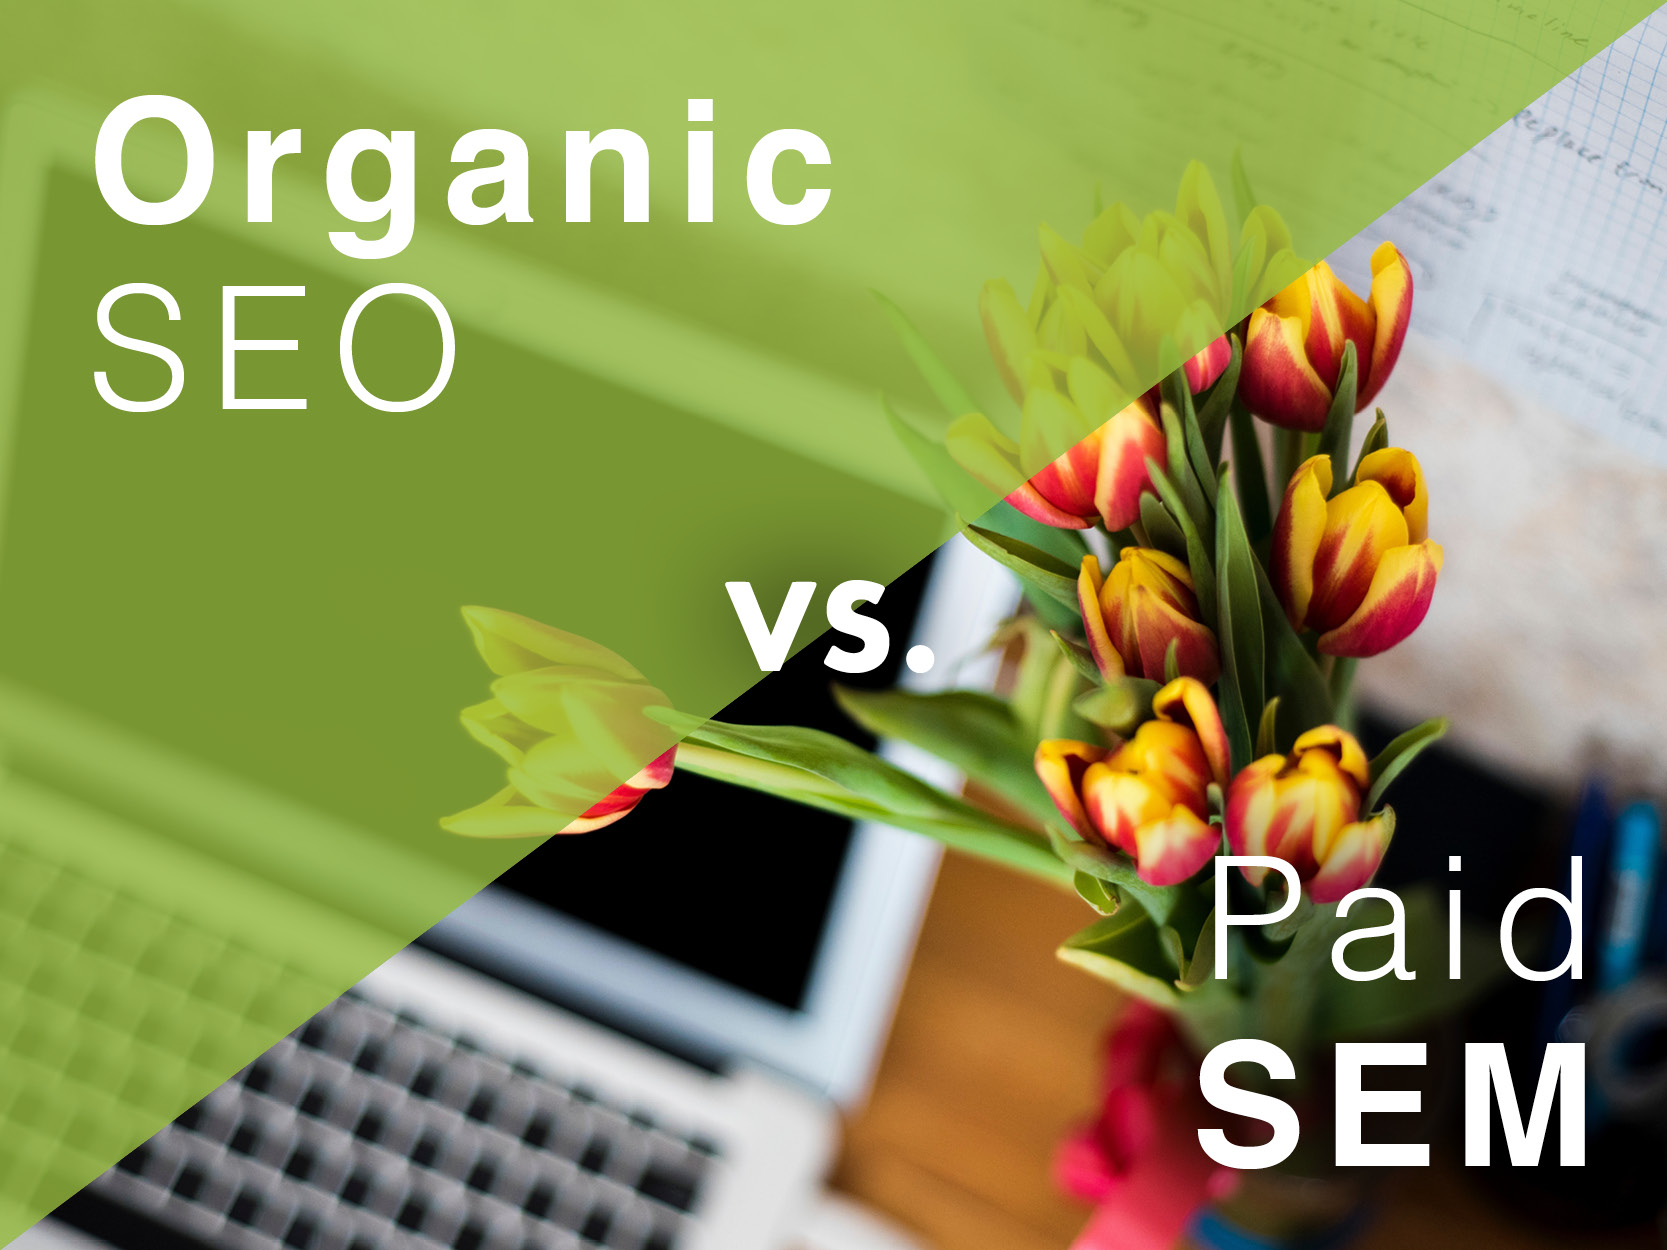 The keys to finding your business online - Organic SEO v. Paid SEM - R.C.Brayshaw & Company